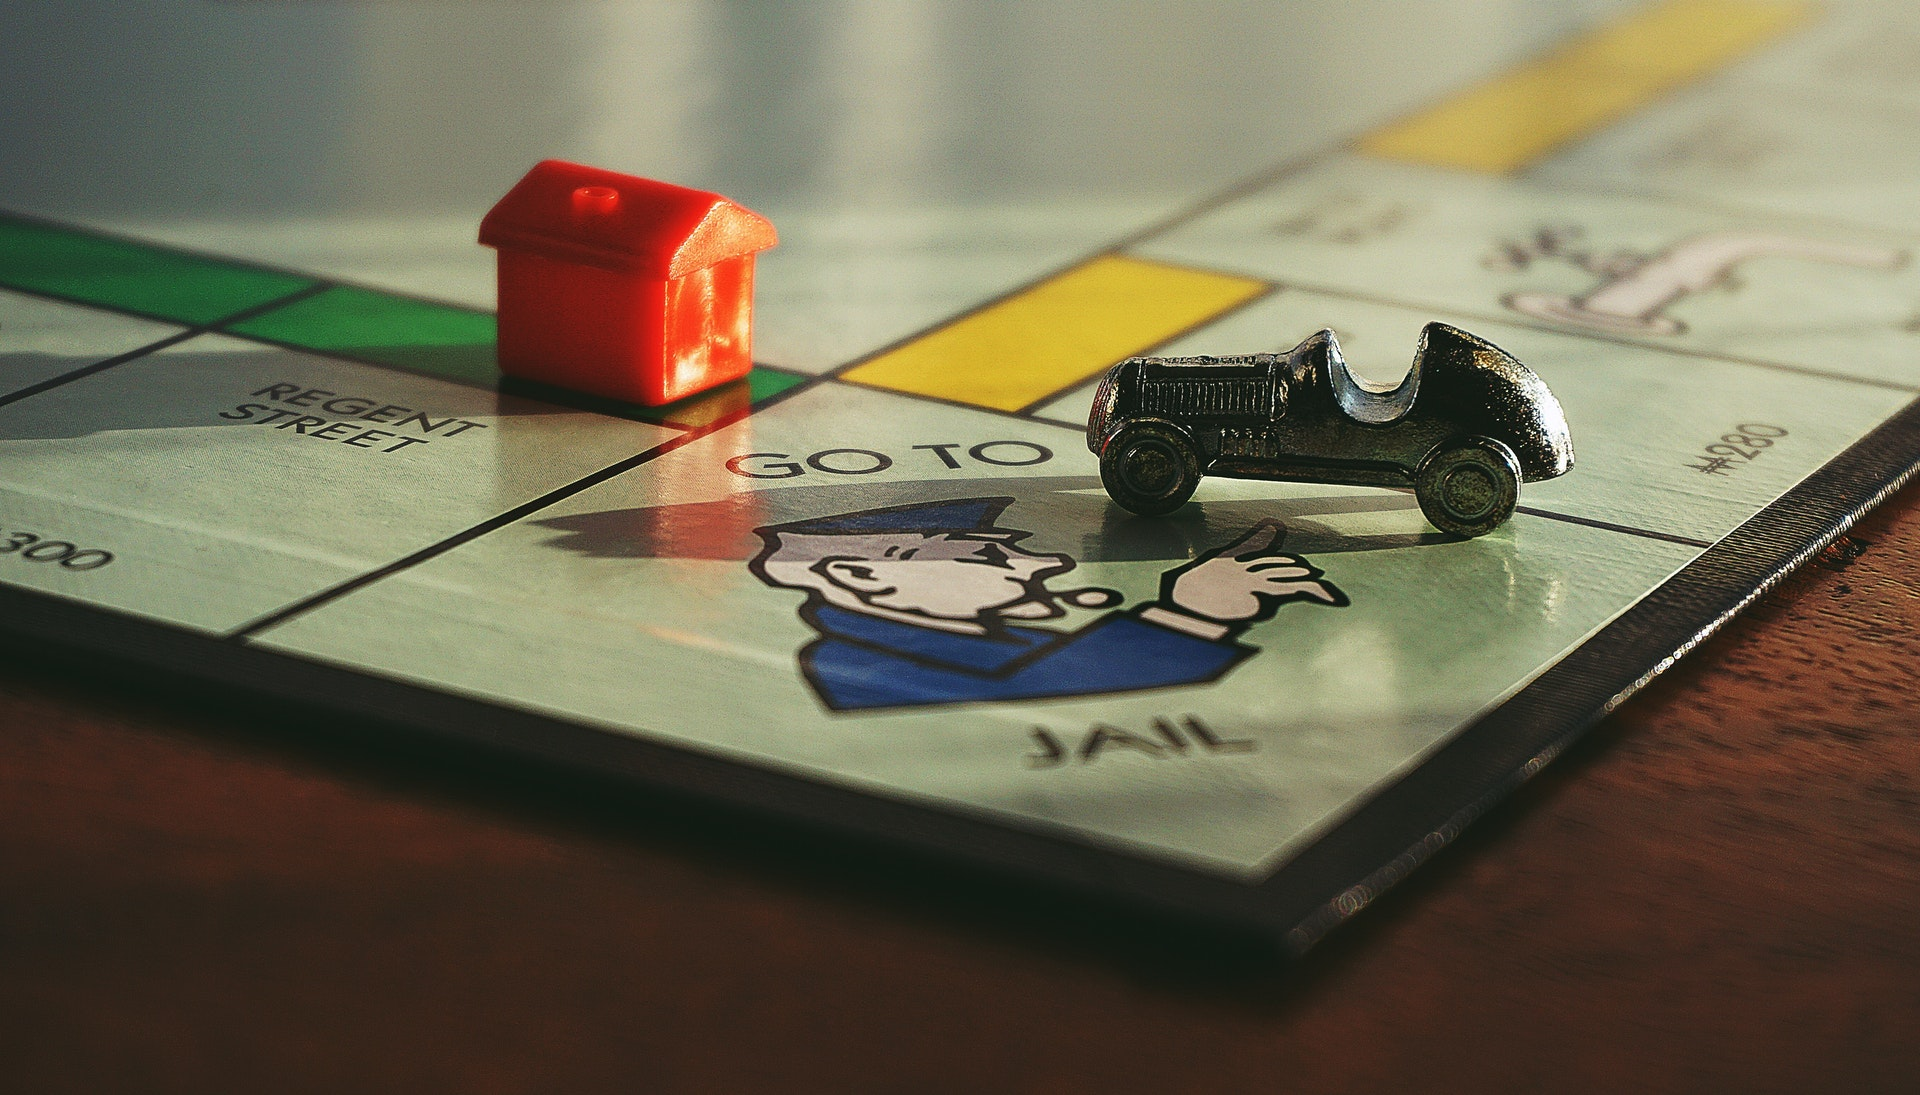 Monopoly board - go to jail